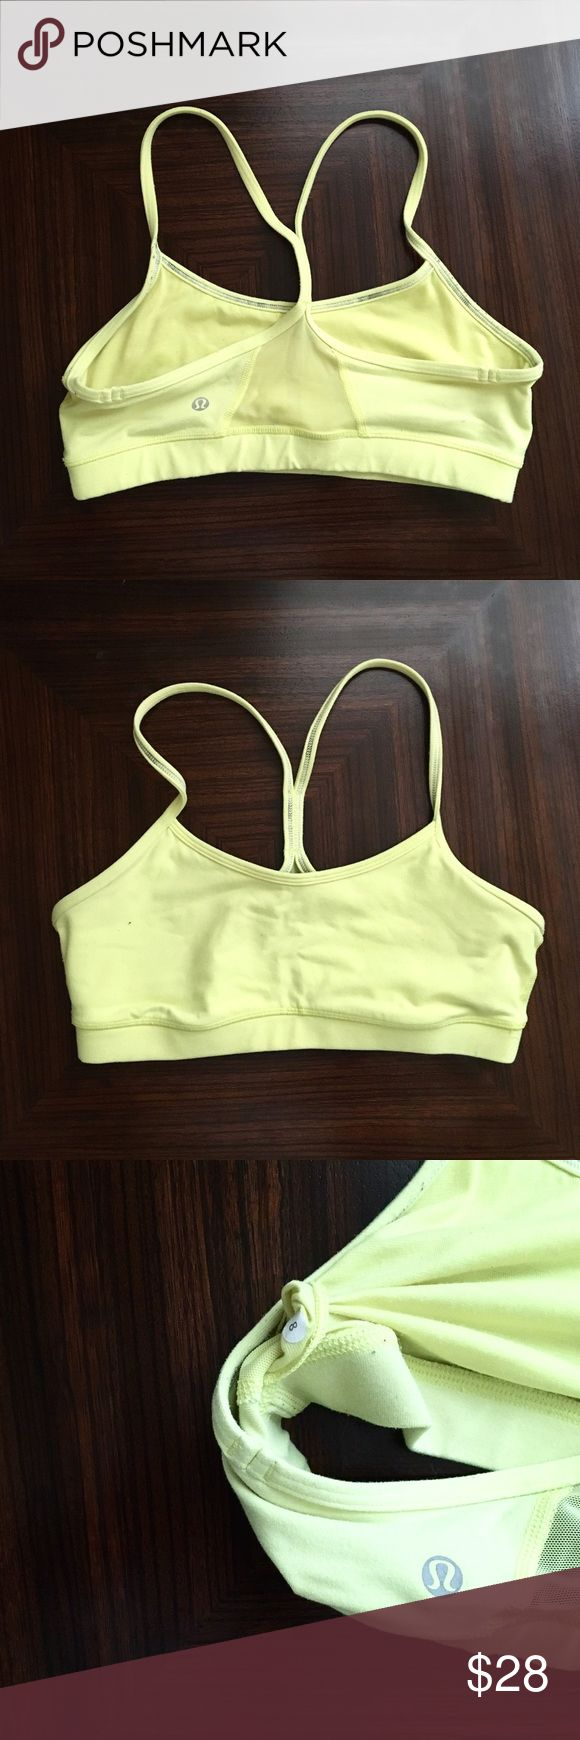 Lululemon Flow Y Bra Flow Y Bra from Lululemon in yellow, size 8. Sweat-wicking racerback bra is ideal for yoga or running! Provides light support - best suited for B/C cup. Good used condition, minor pilling, no stains or holes. Bra pads not included, but you can pick them up for free at any lululemon location lululemon athletica Tops